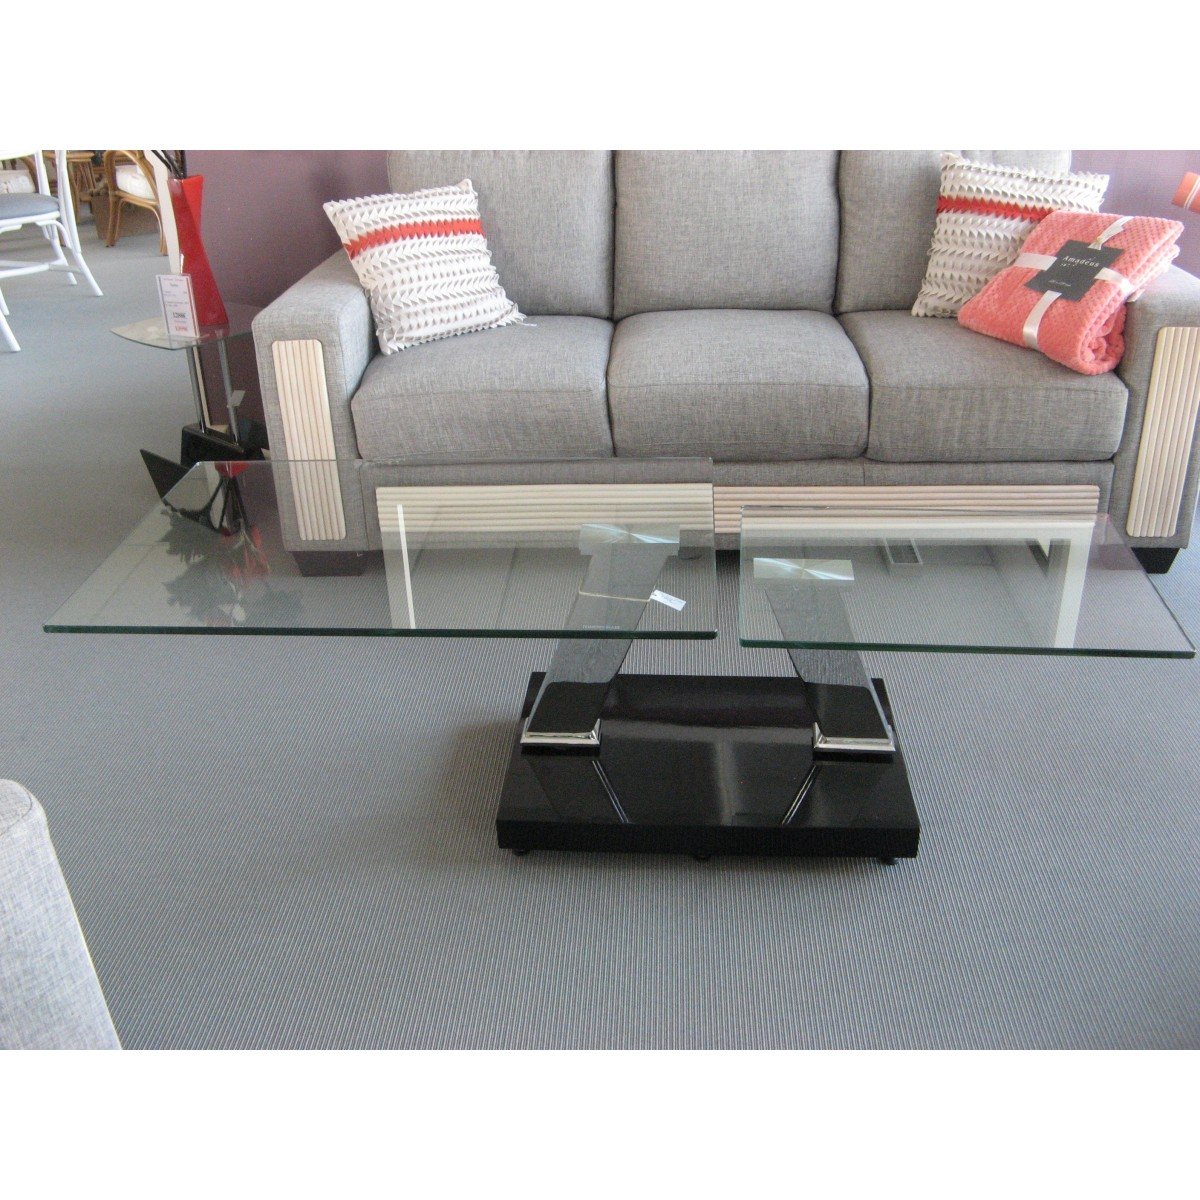 table basse en verre. Black Bedroom Furniture Sets. Home Design Ideas